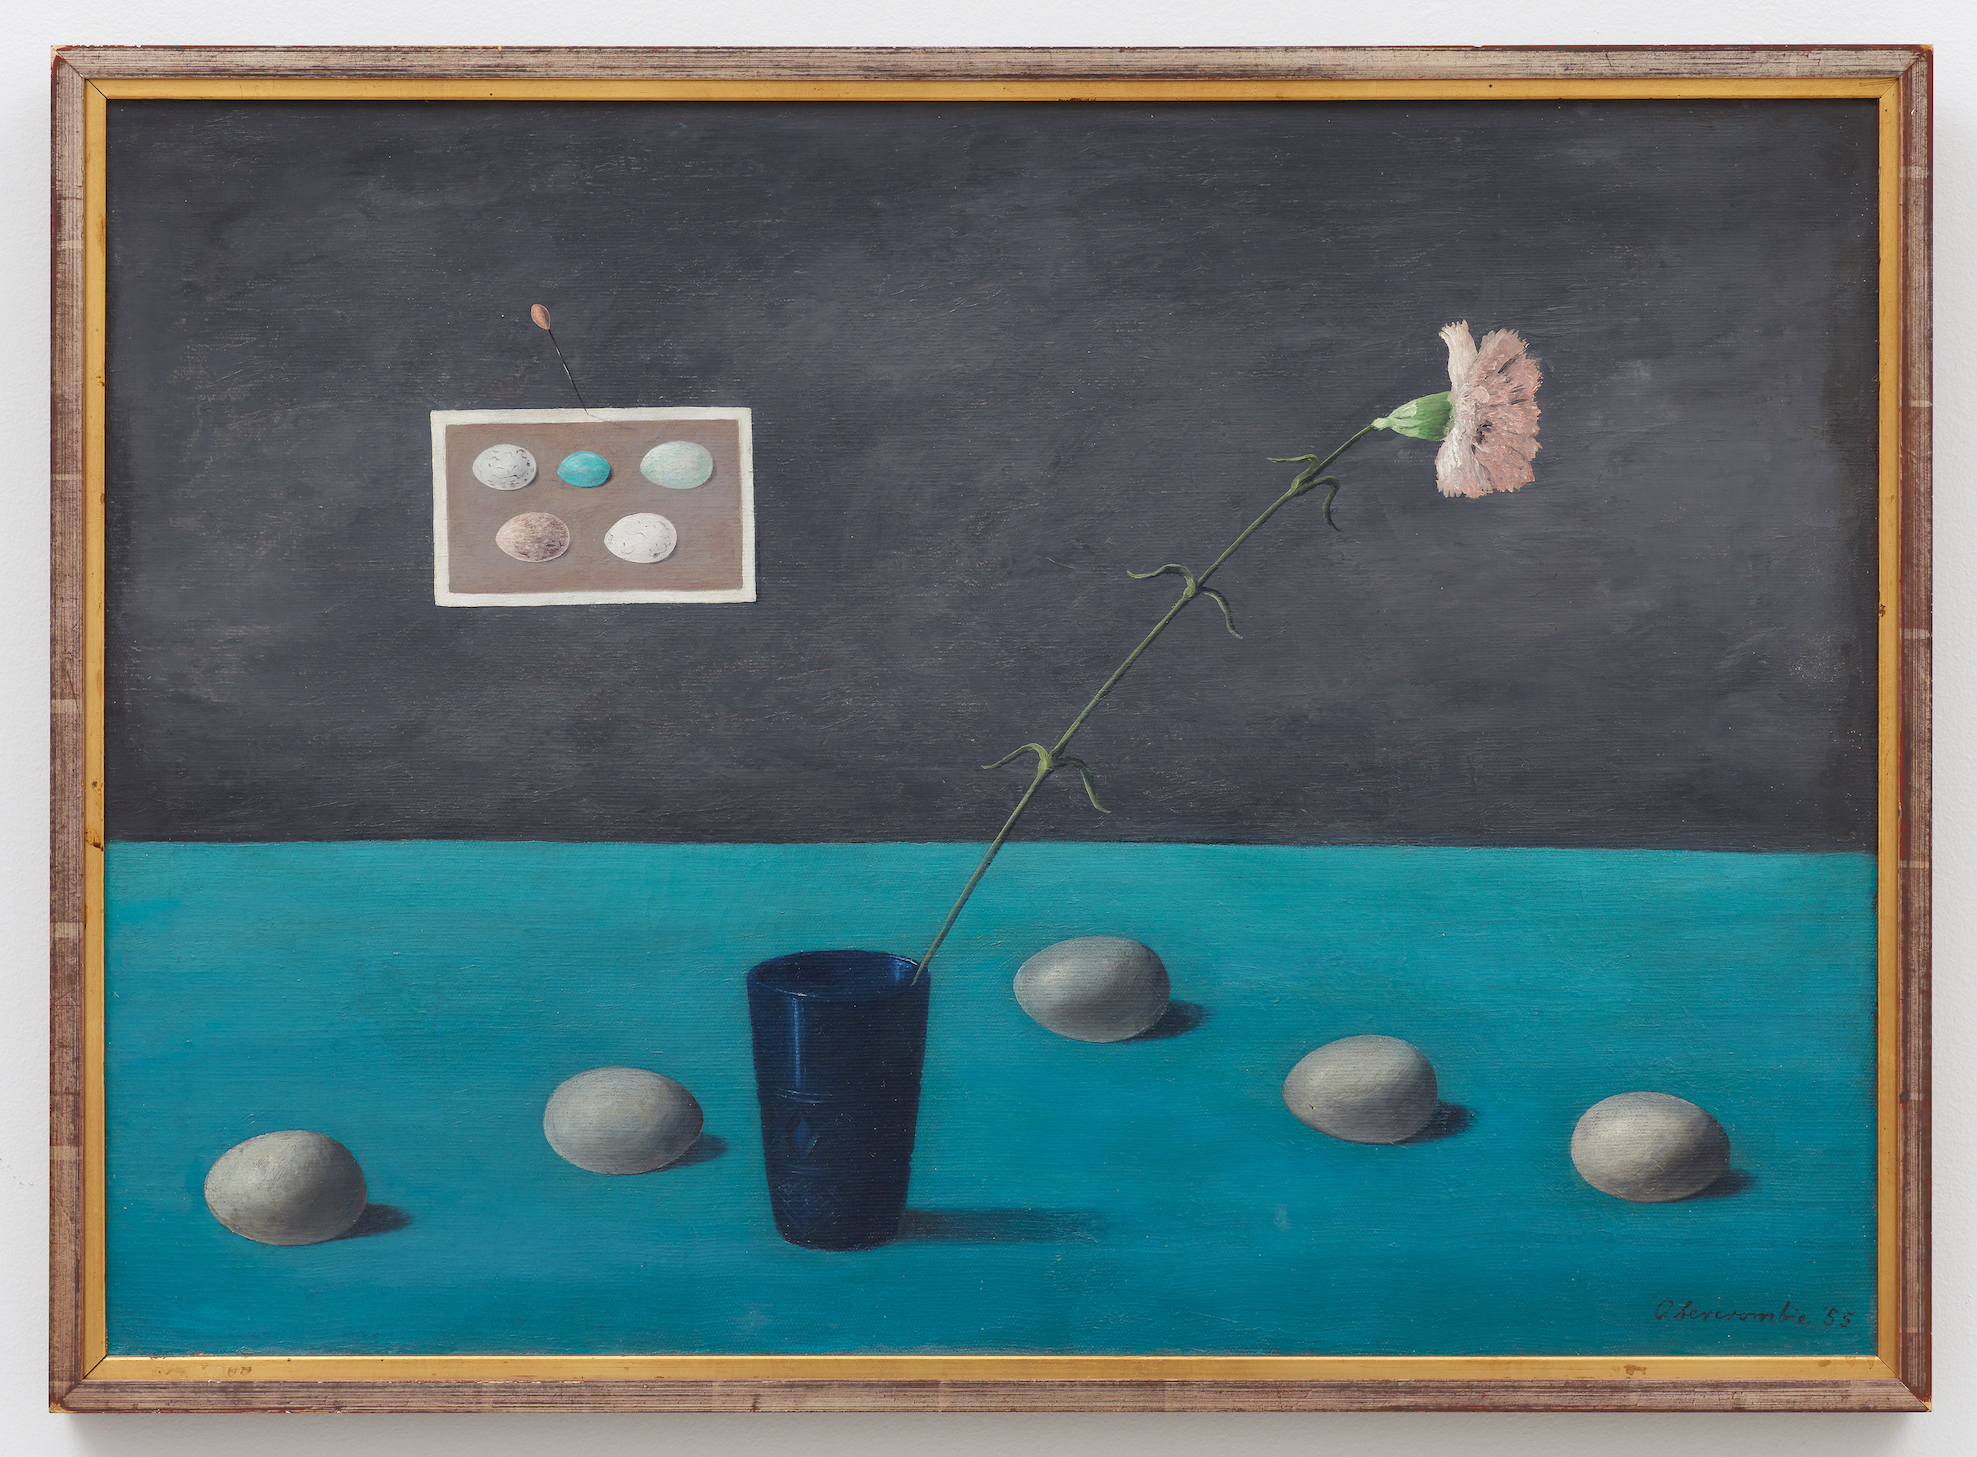 Eggs and Carnation , 1955, Oil on canvas, 20 × 28 inches (unframed); 21 1/2 × 29 1/2 inches (framed). Collection of Laura and Gary Maurer